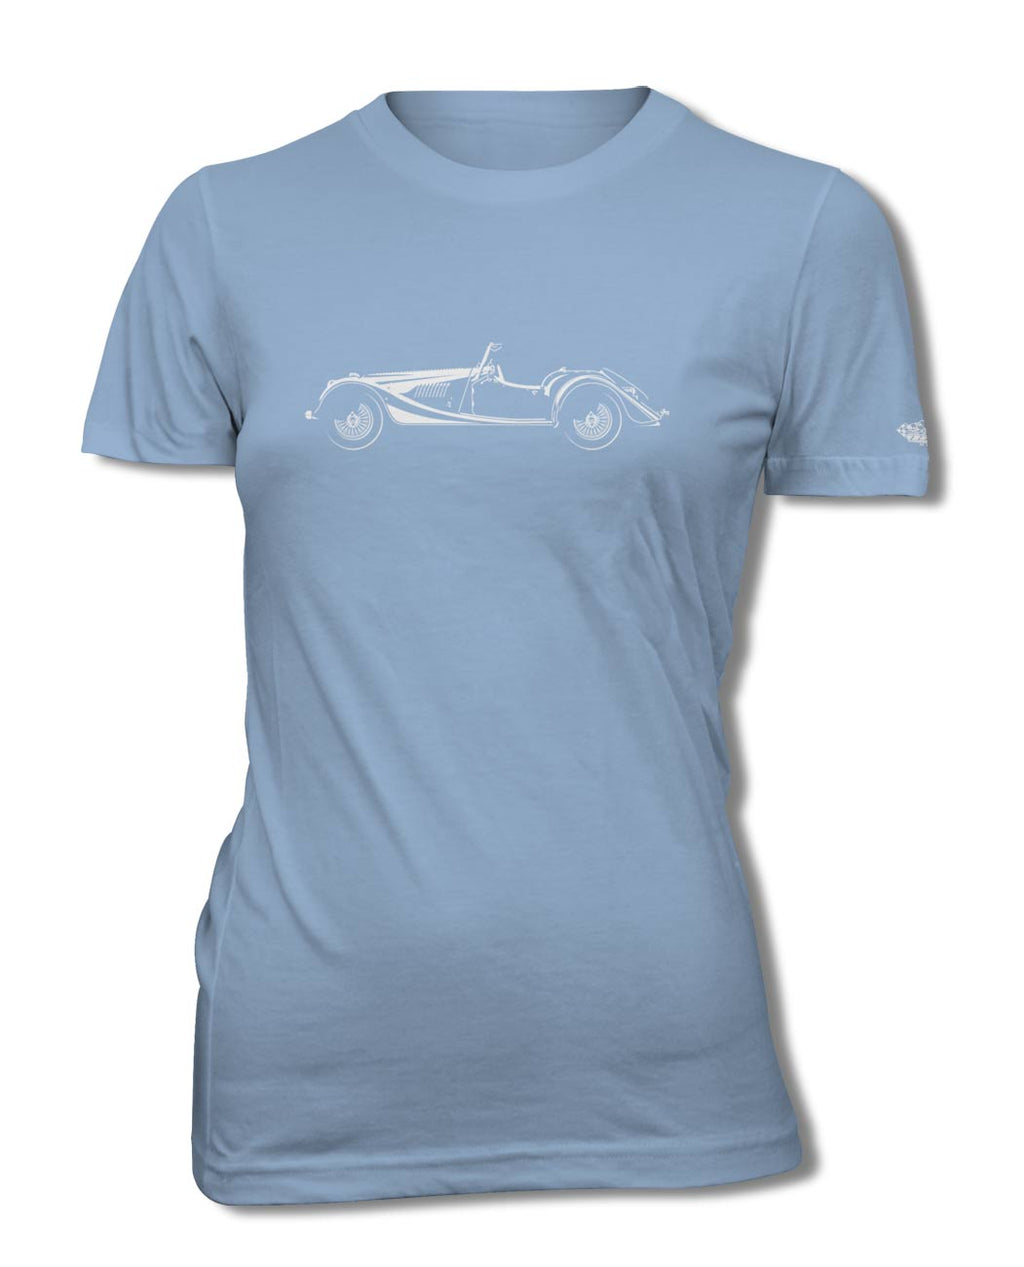 Morgan 4/4 Convertible T-Shirt - Women - Side View